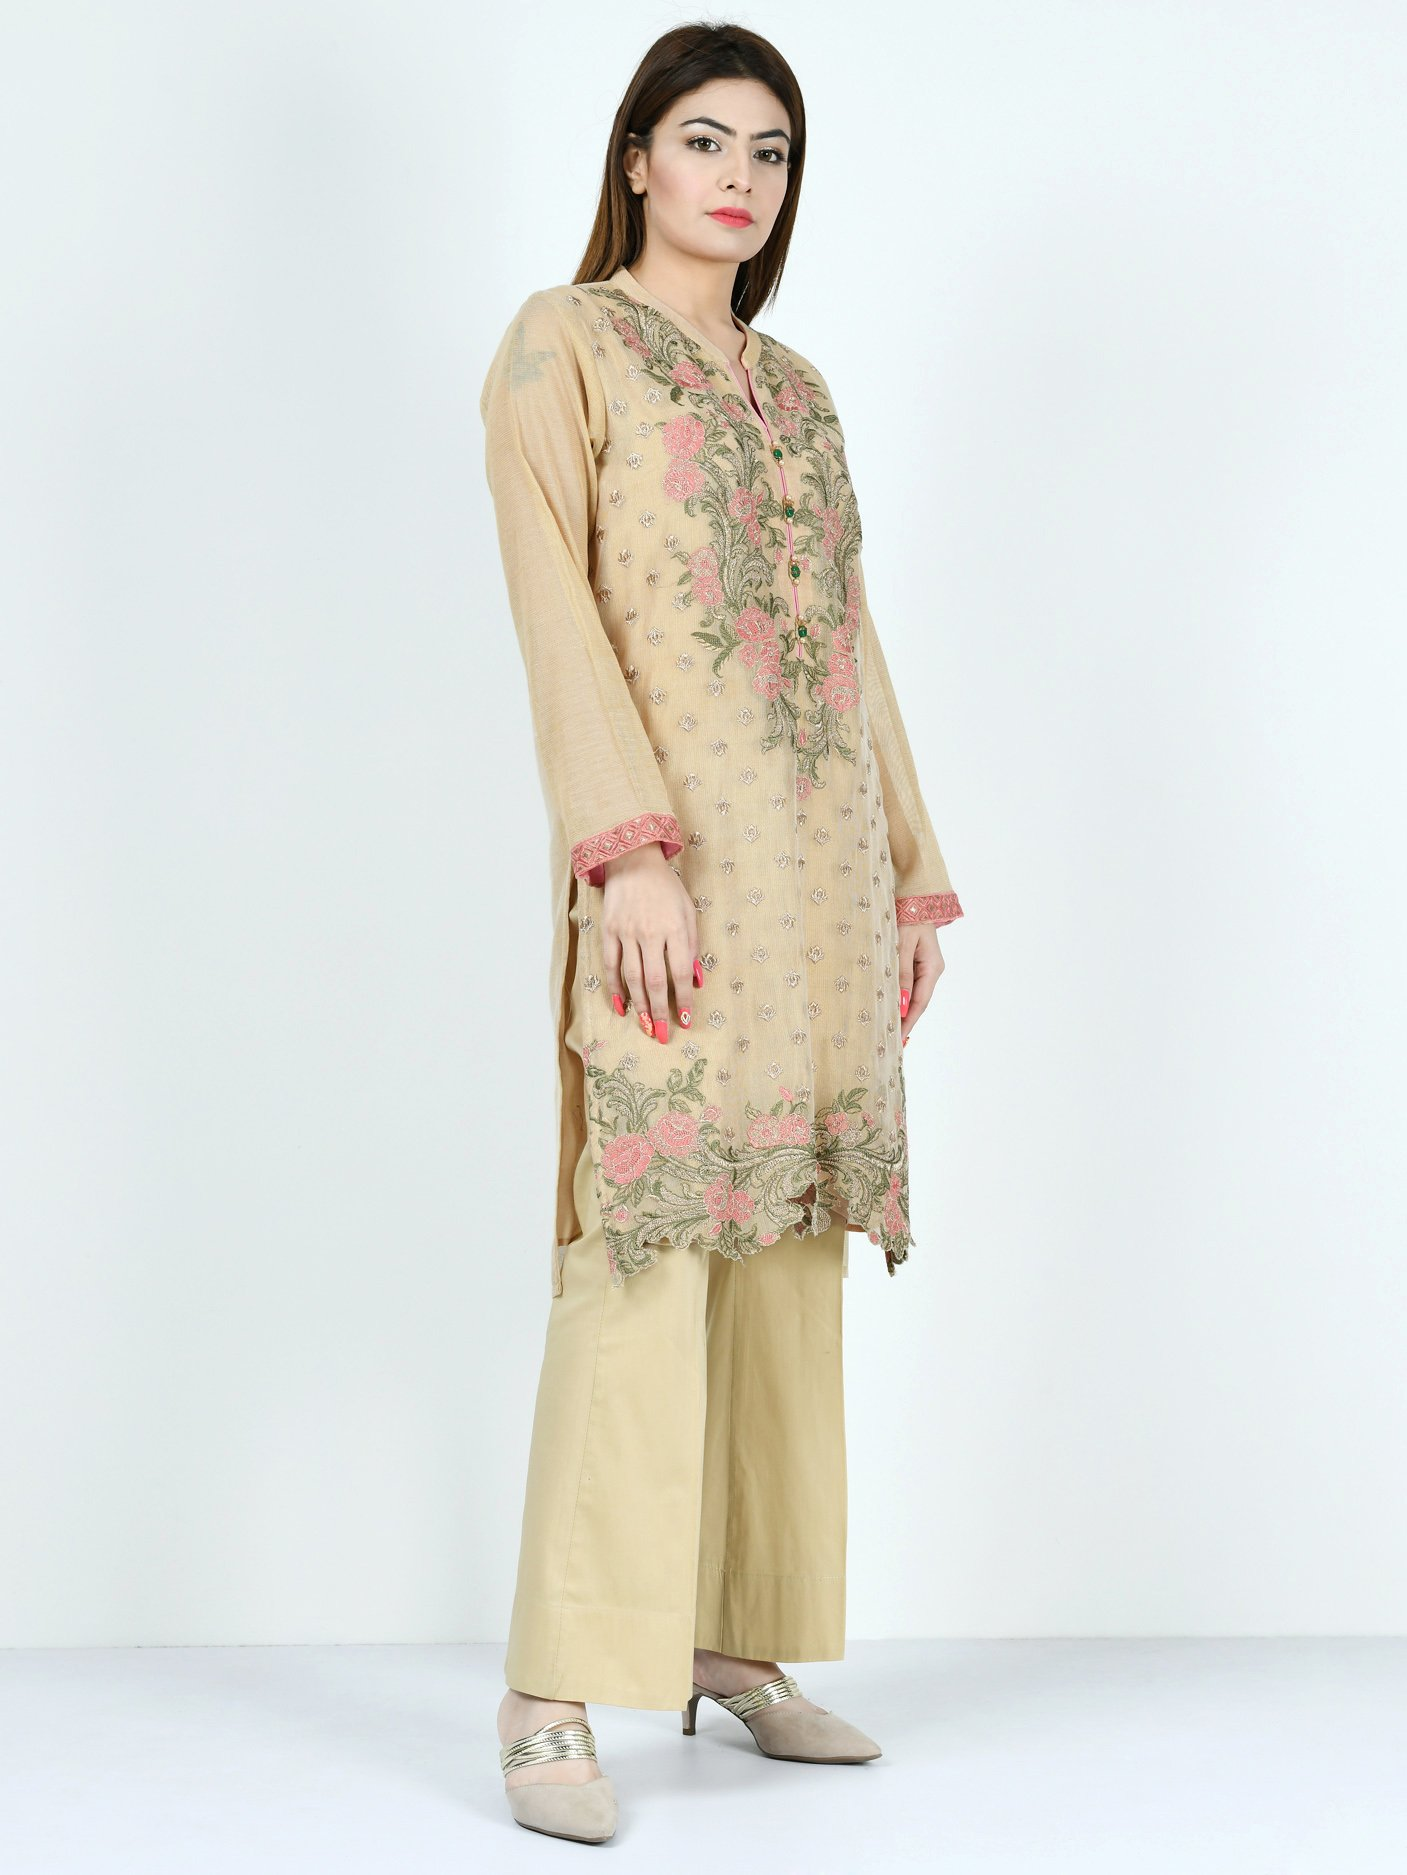 LImelight EMBROIDERED NET SHIRT 1Pc